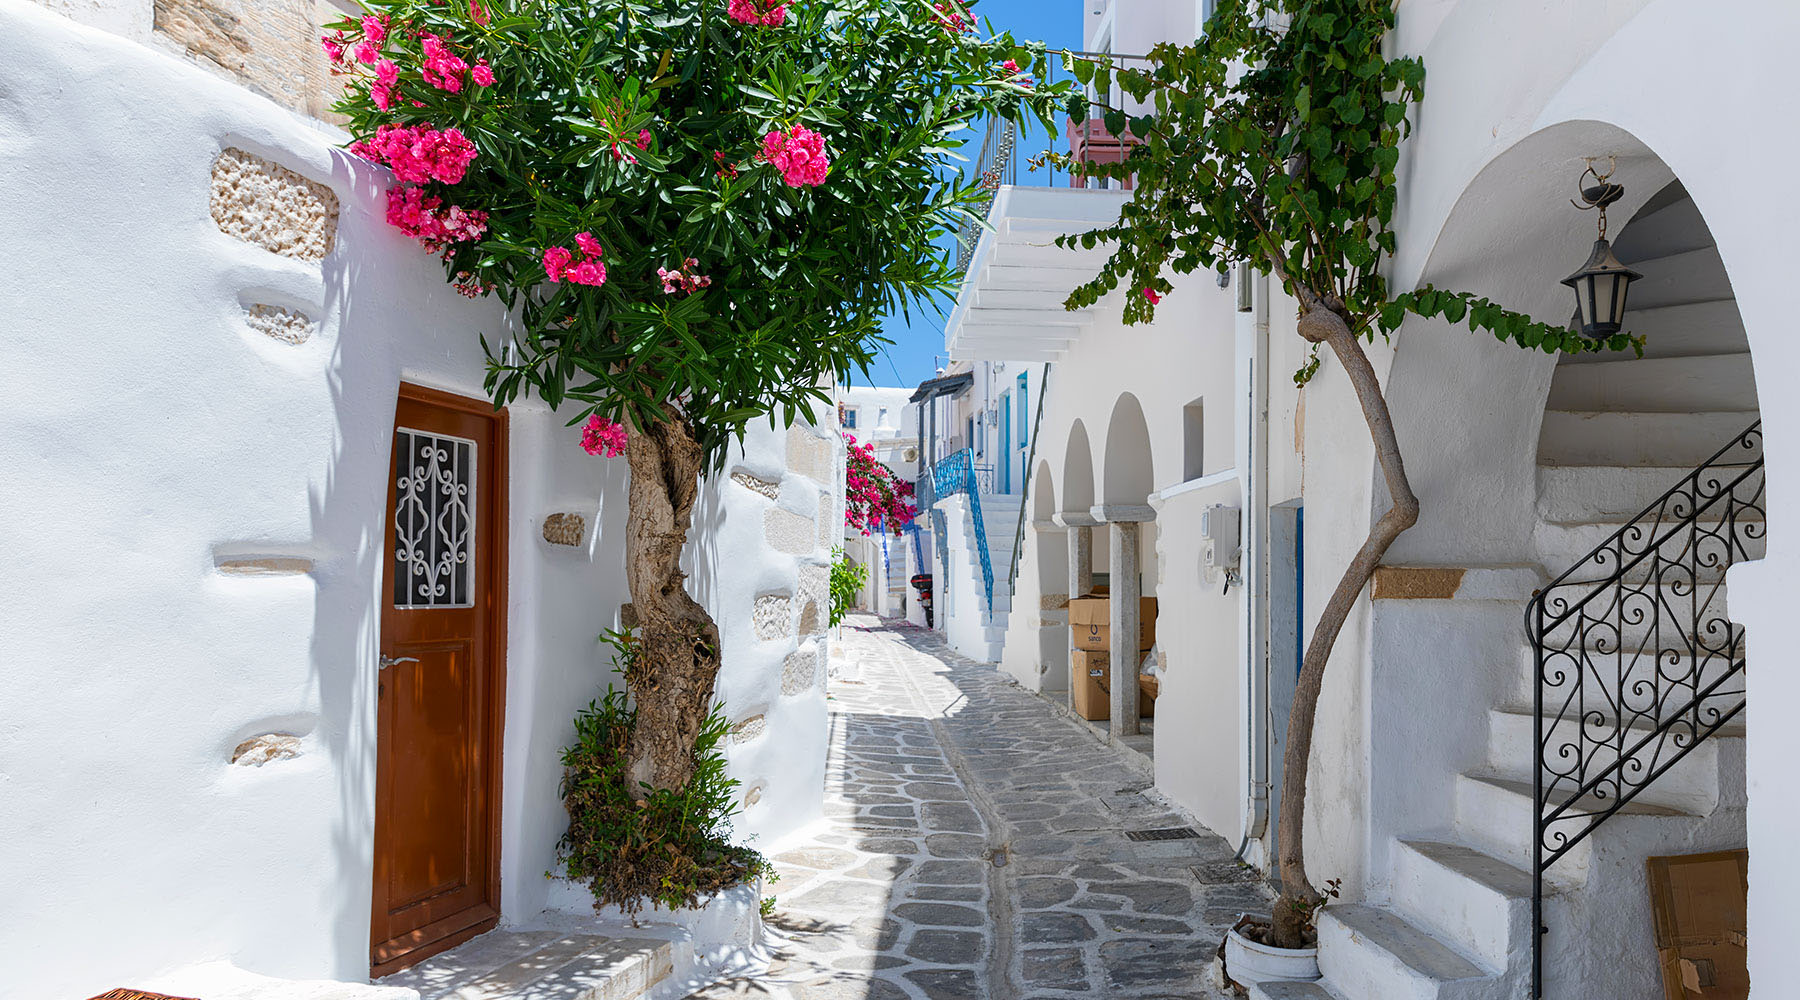 6-Night Greece Intensive Voyage